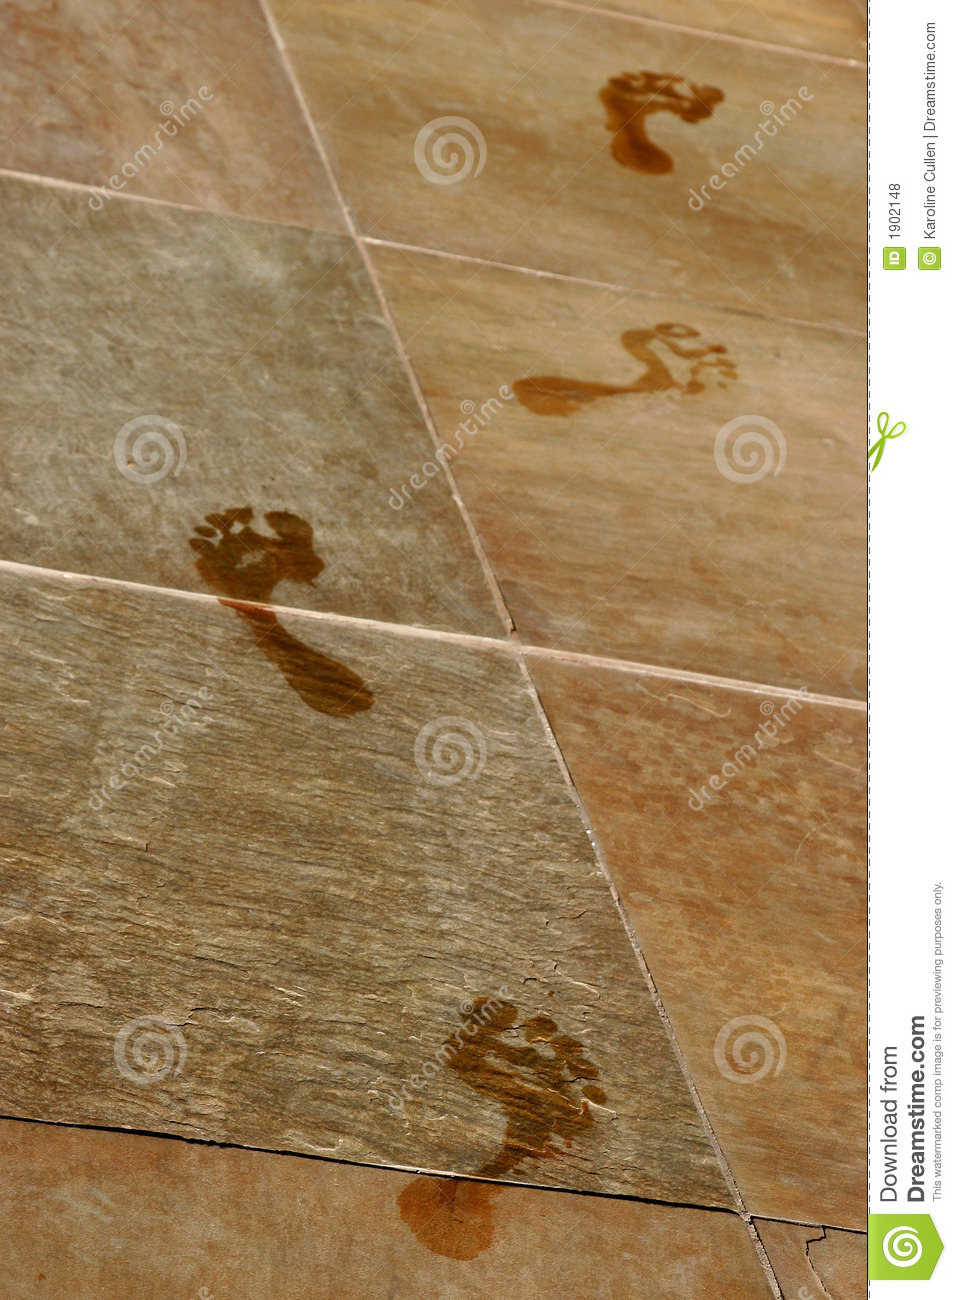 Wet Footprints Stock Photo Image Of Lifestyle Leisure